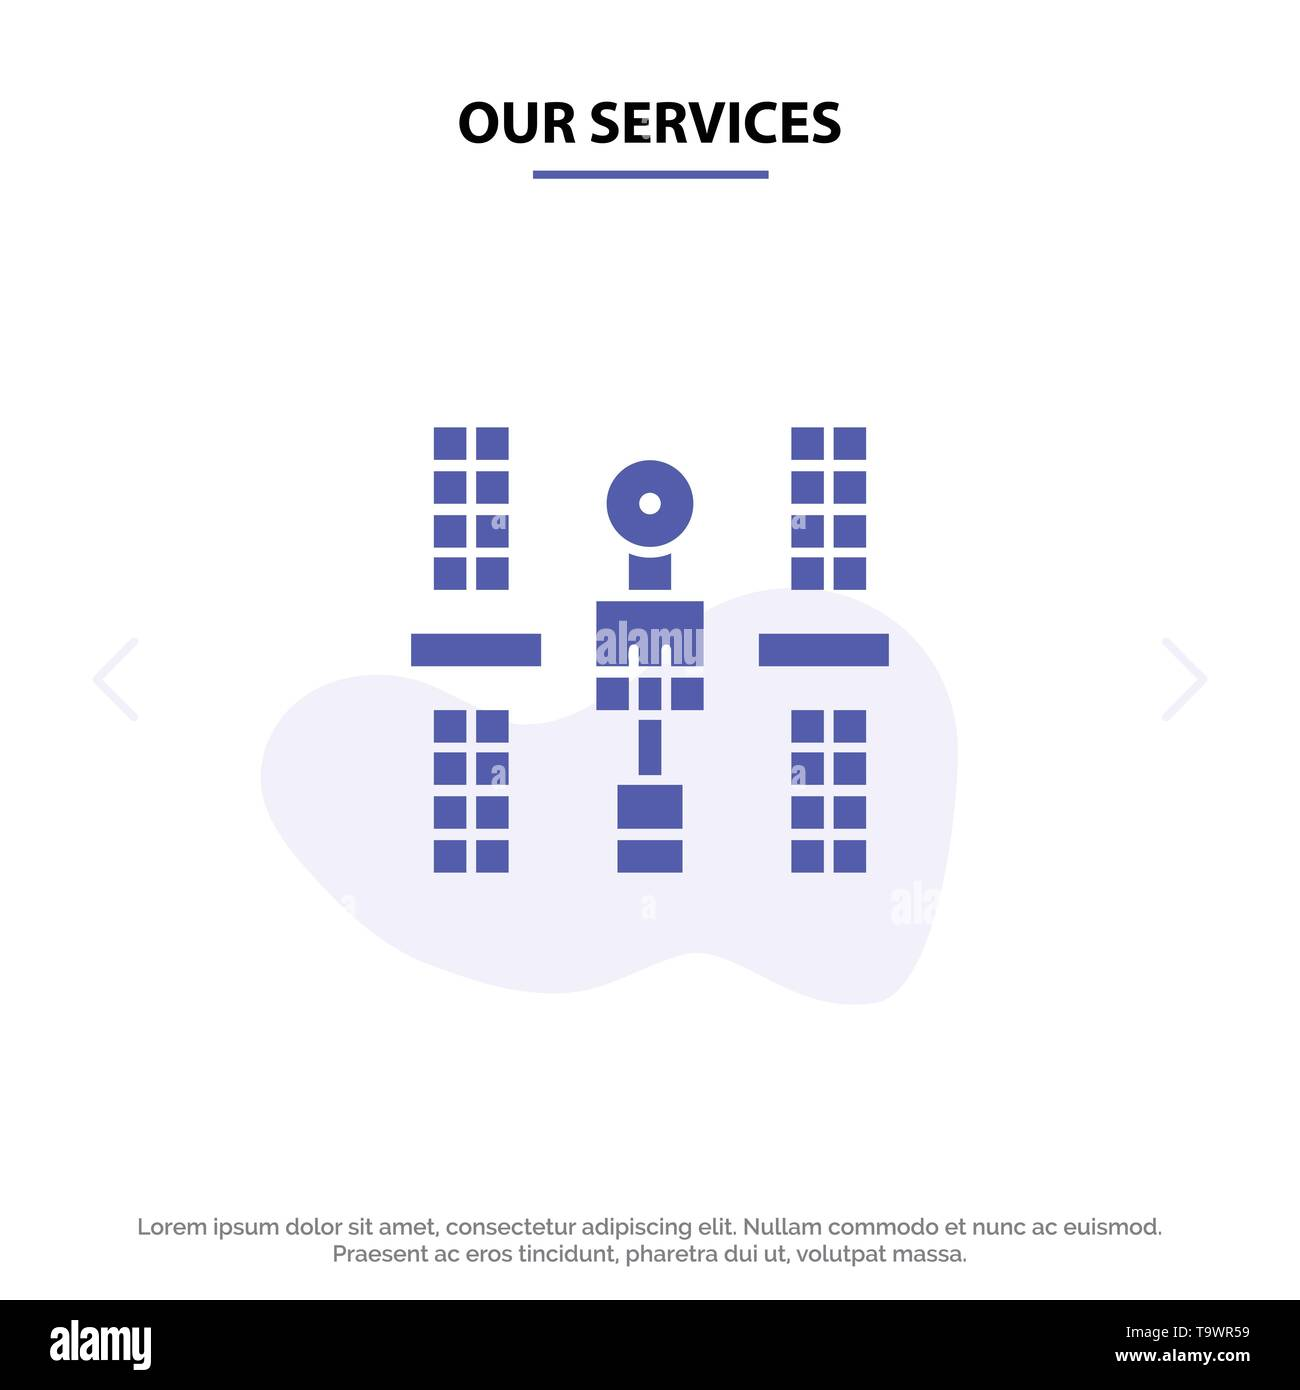 Our Services Complex, Orbital, Platform, Satellite, Space Solid Glyph Icon Web card Template - Stock Image